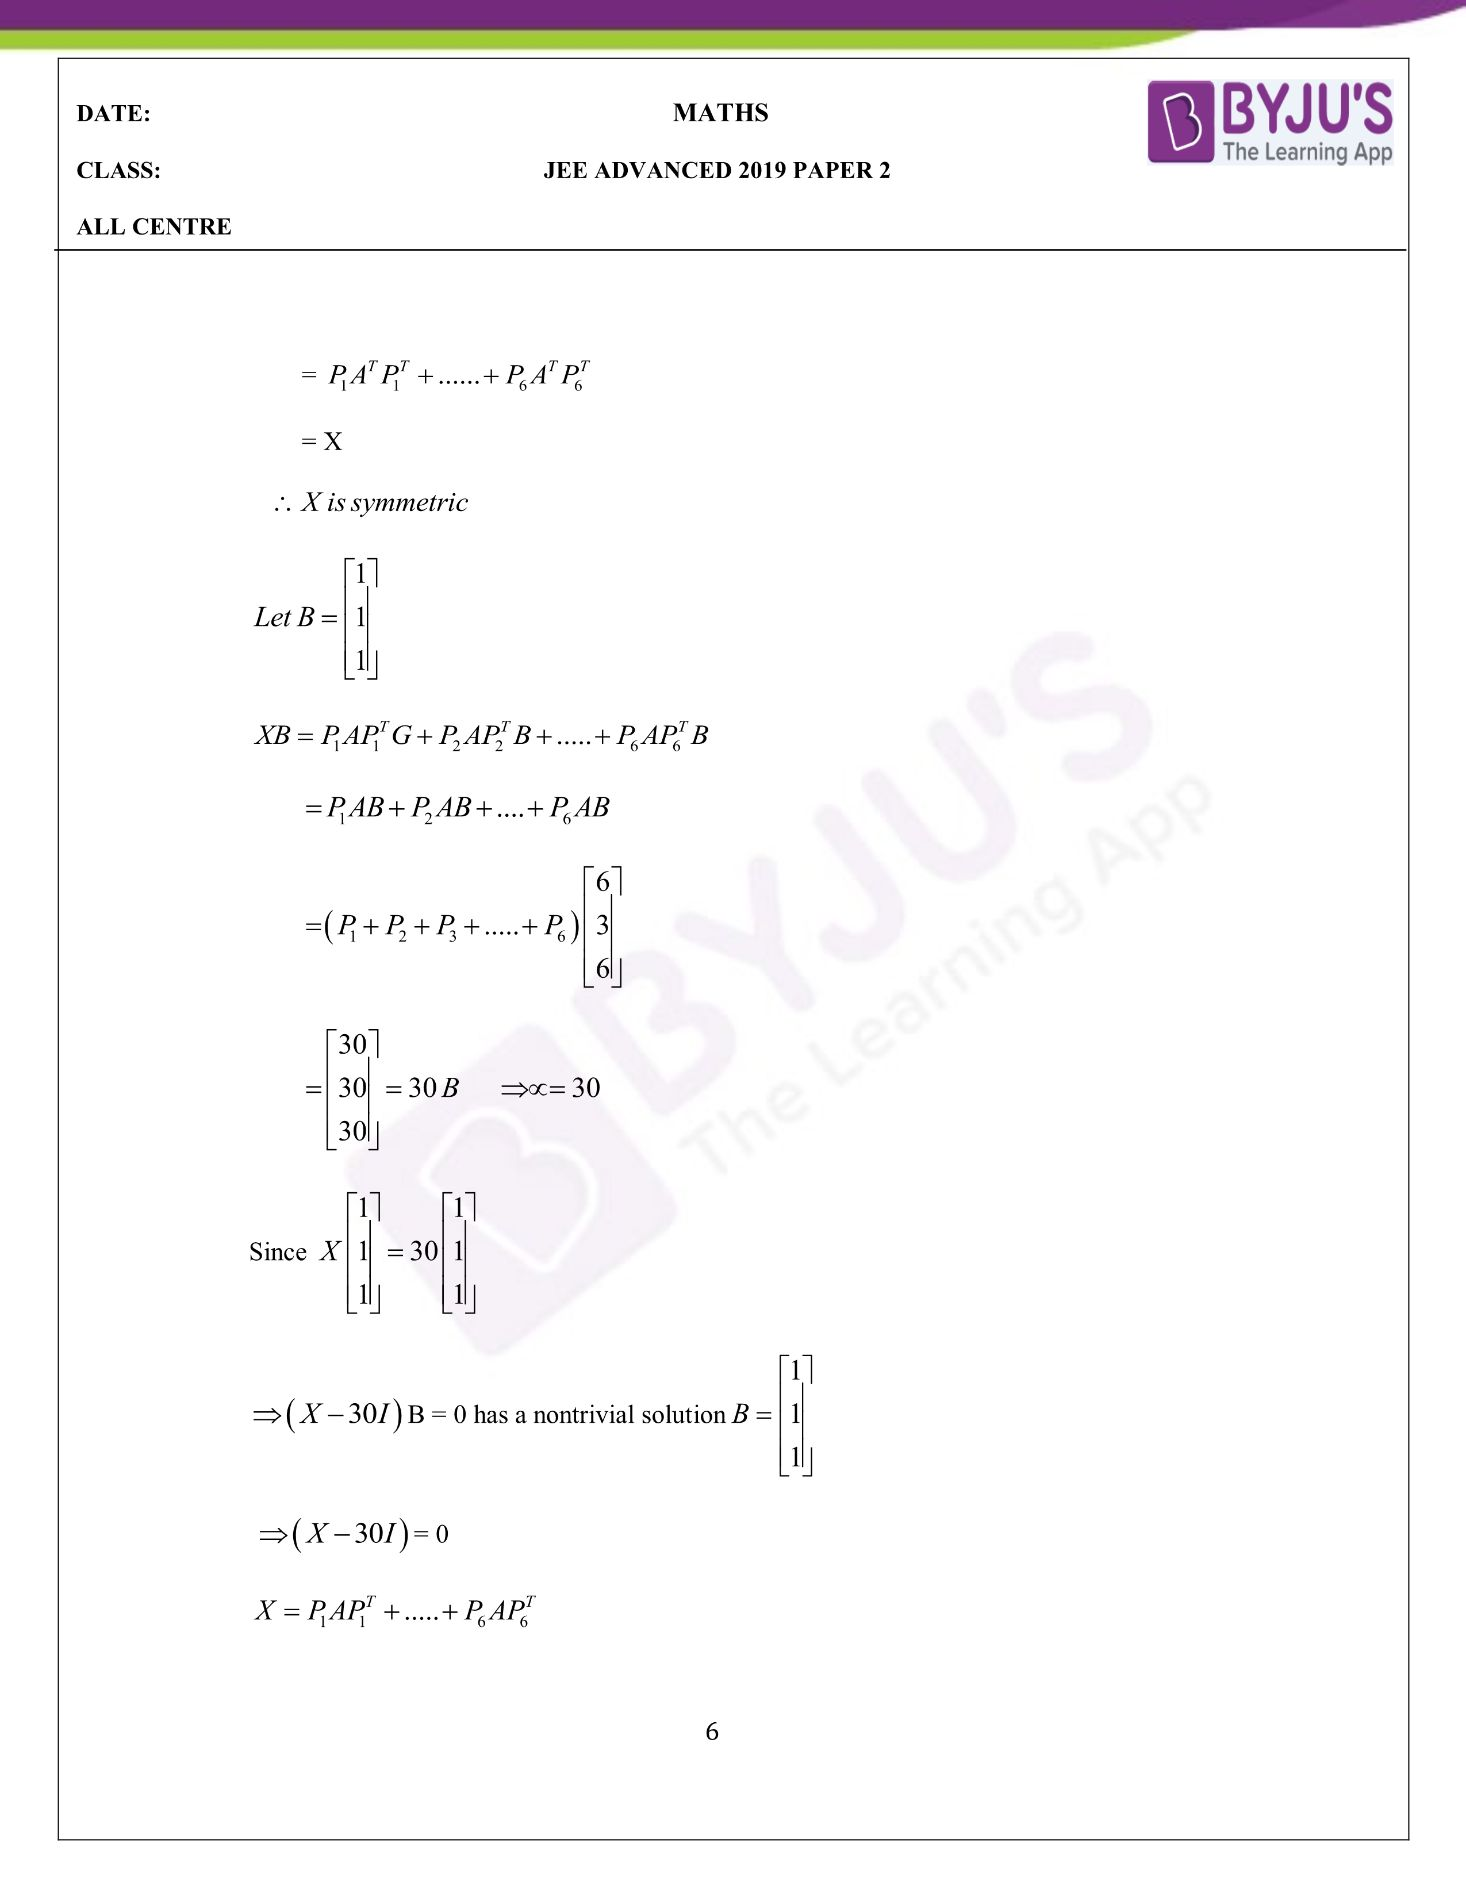 JEE Advanced 2019 Maths Paper 2 Questions with Solutions